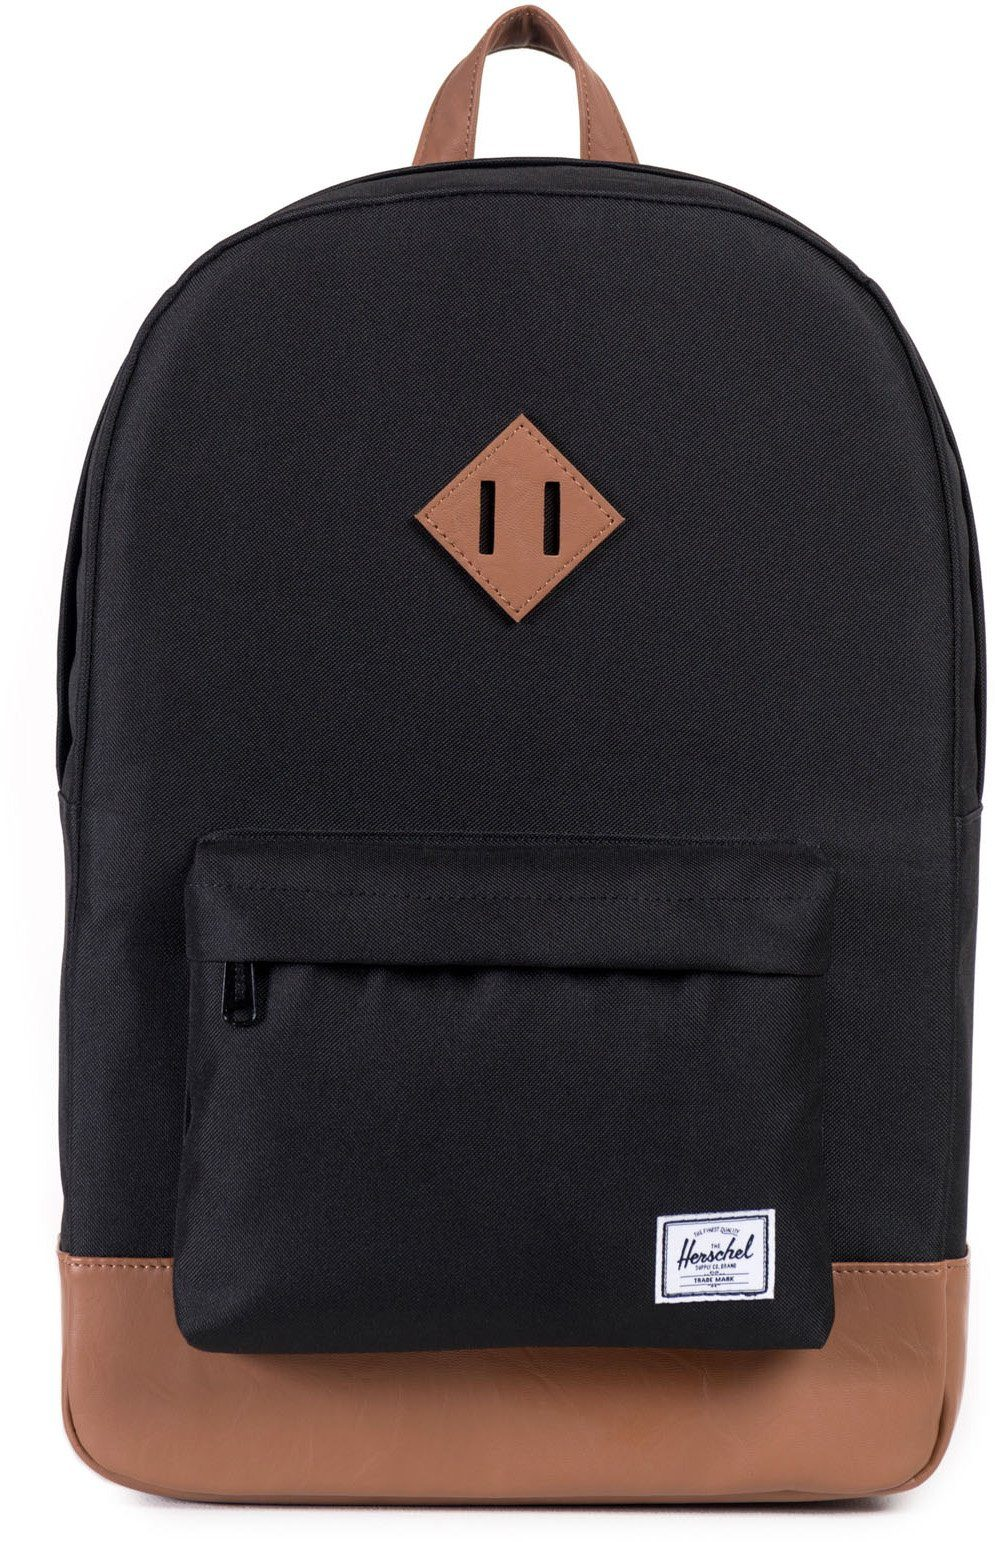 Herschel Rucksack mit Laptopfach, »Heritage Backpack, Black«